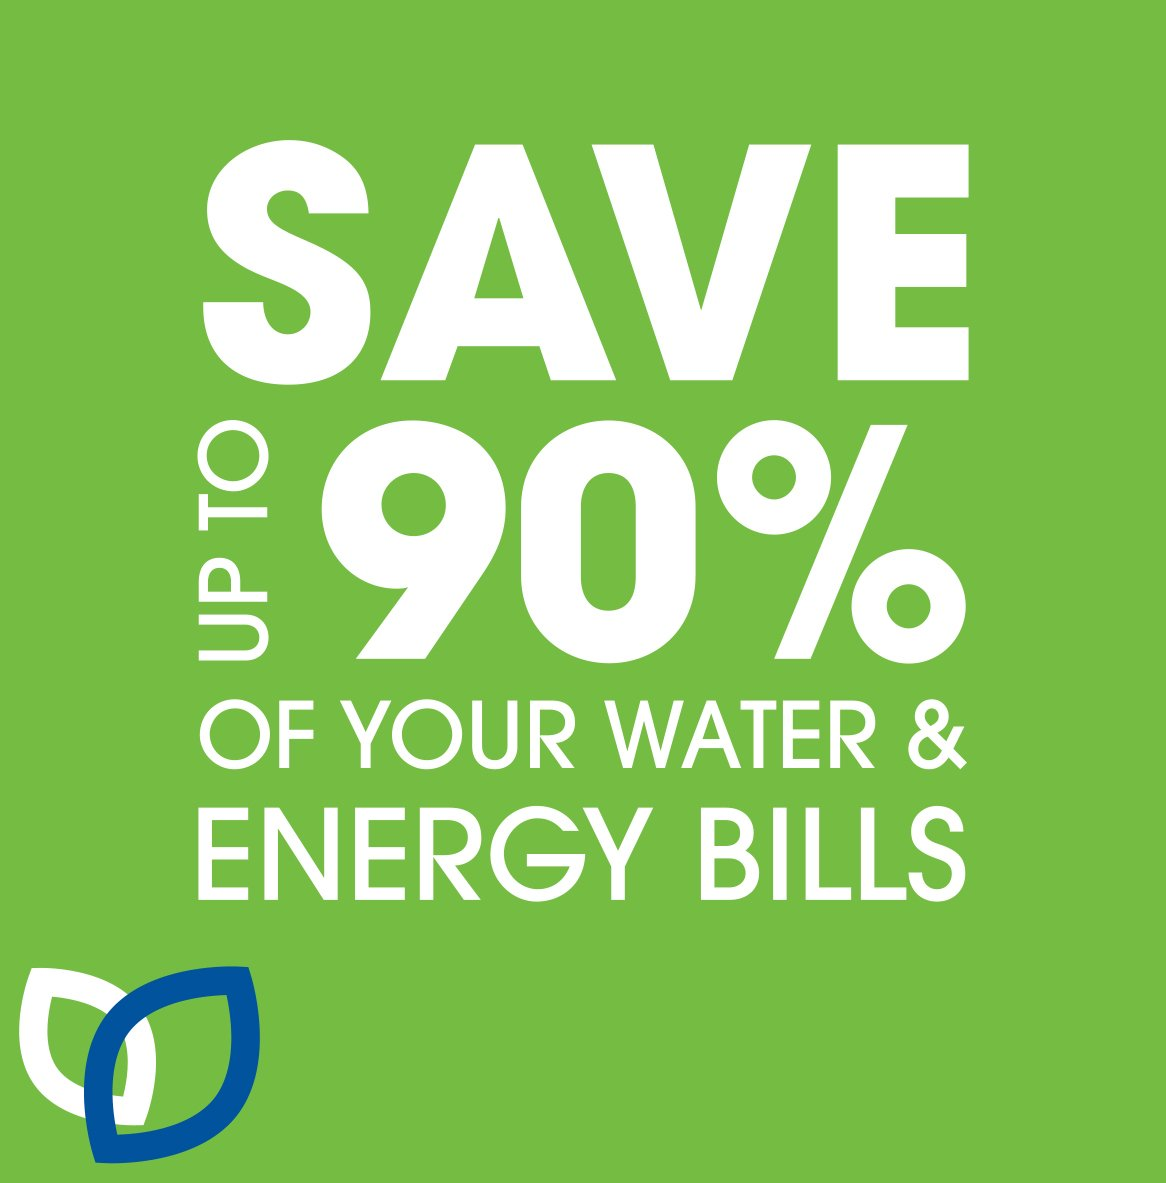 Save 90% of your water & energy bills